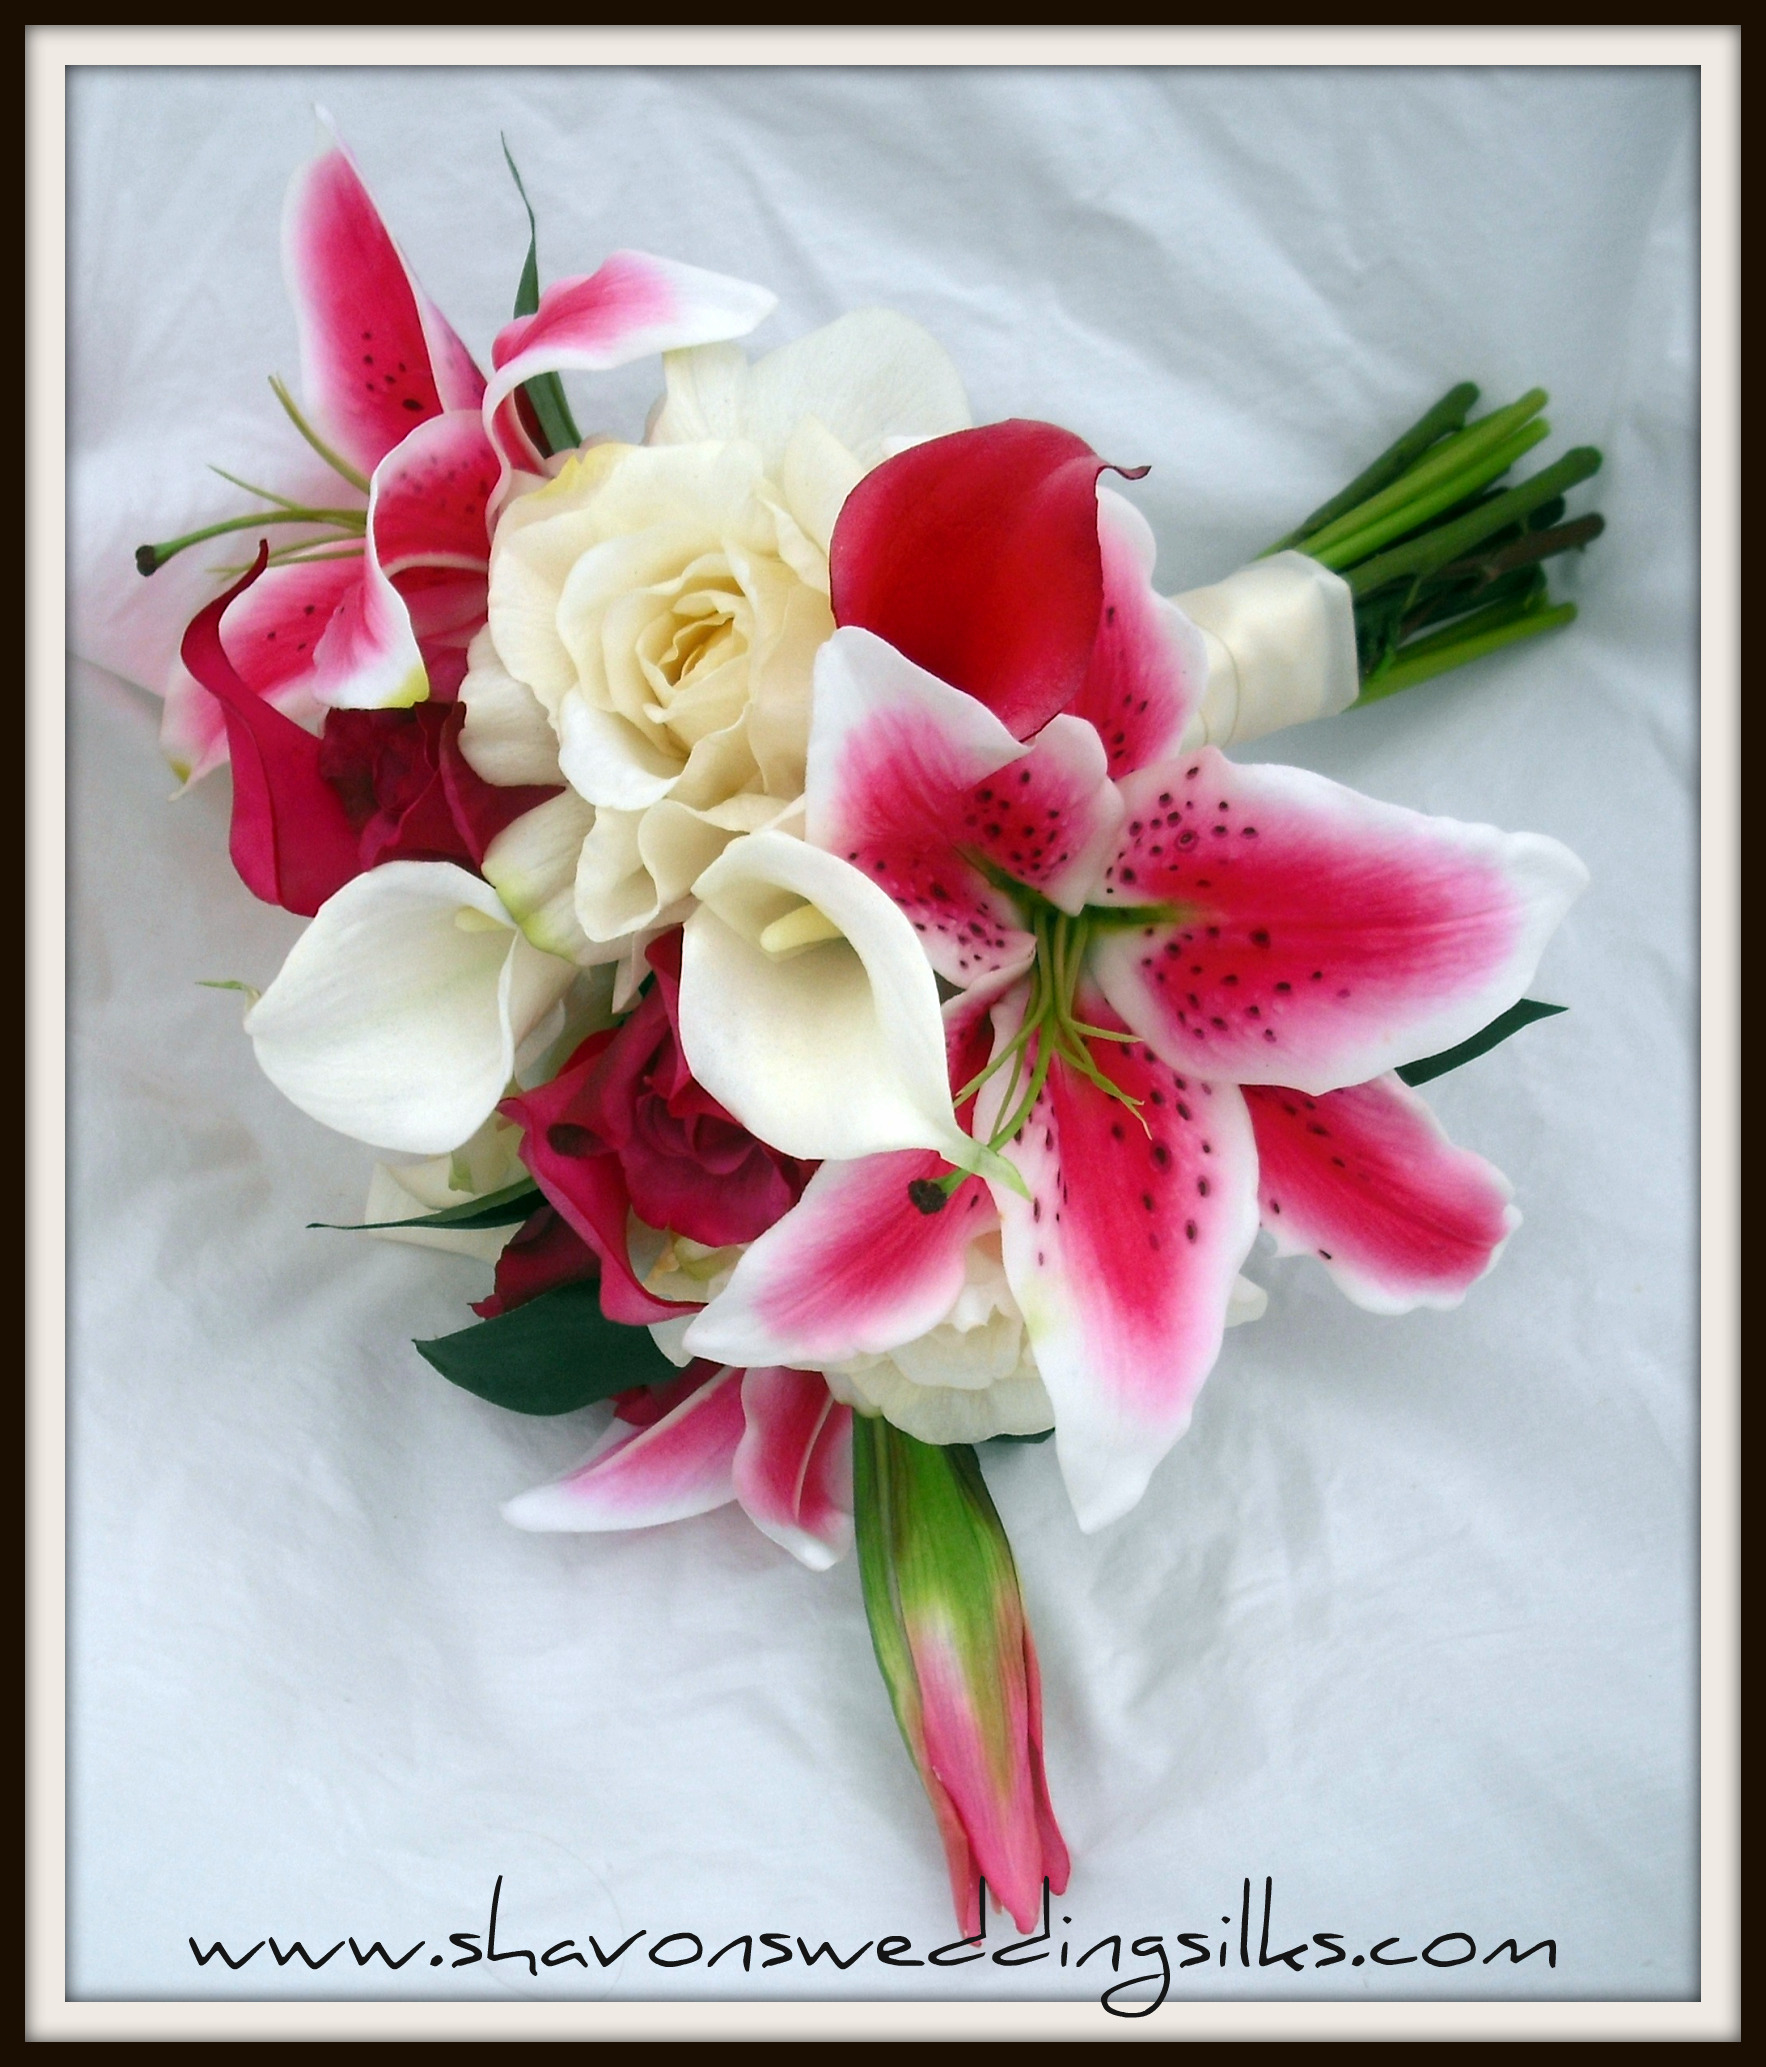 Flowers & Decor, white, pink, Bride Bouquets, Flowers, Roses, Bouquet, Wedding, Calla, Lilies, Cream, Stargazer, Fresh, Fuchsia, Touch, Shavons wedding silks, Real, Floramatique